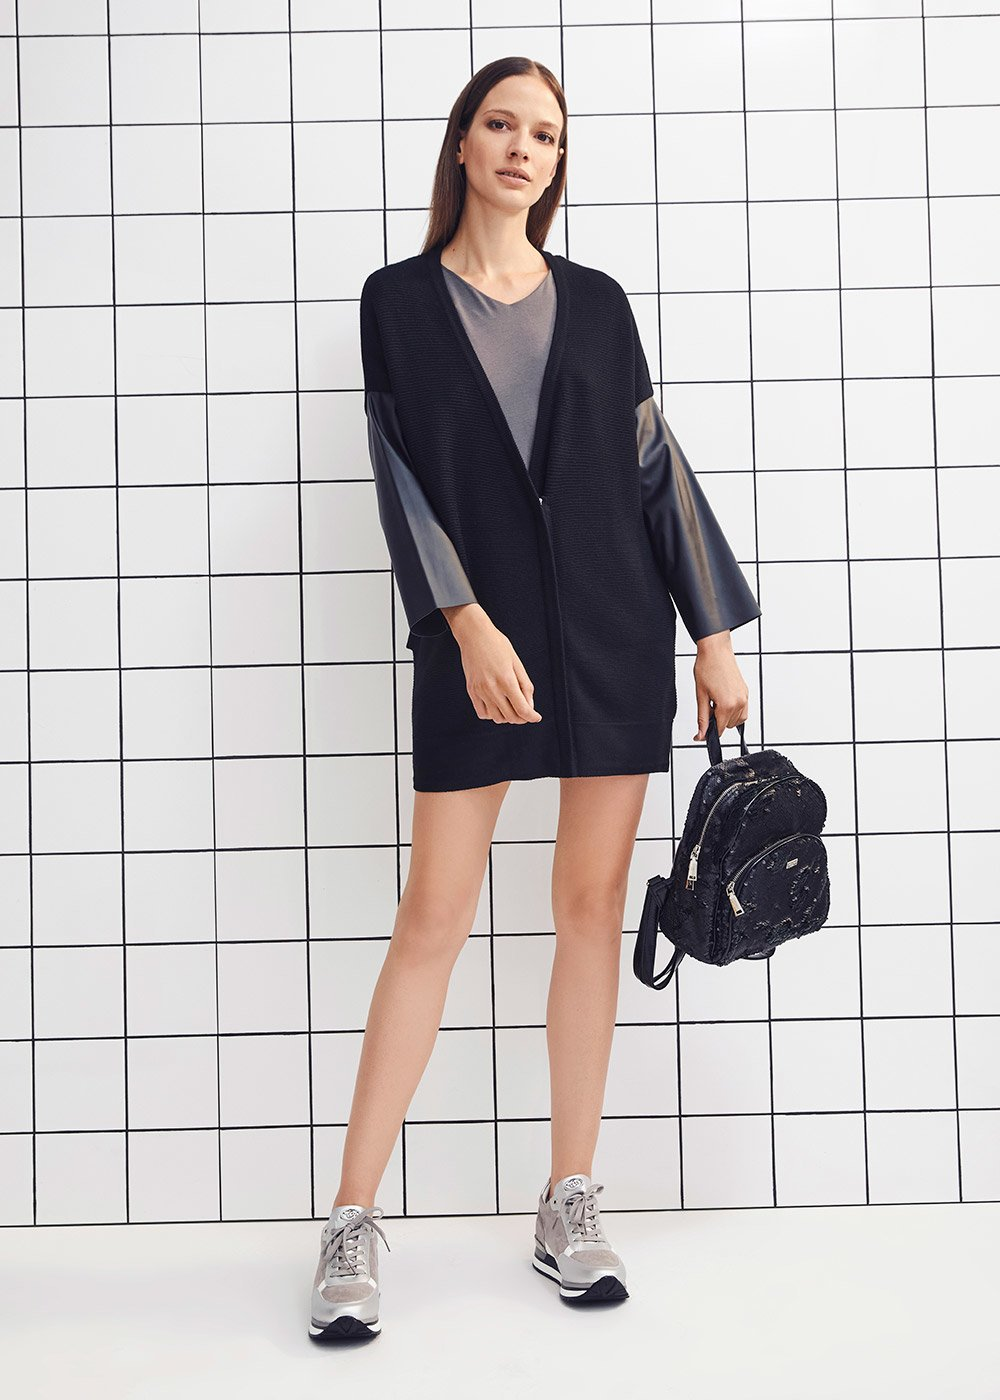 V-neck cardigan with contrasting faux-leather sleeves - Black - Woman